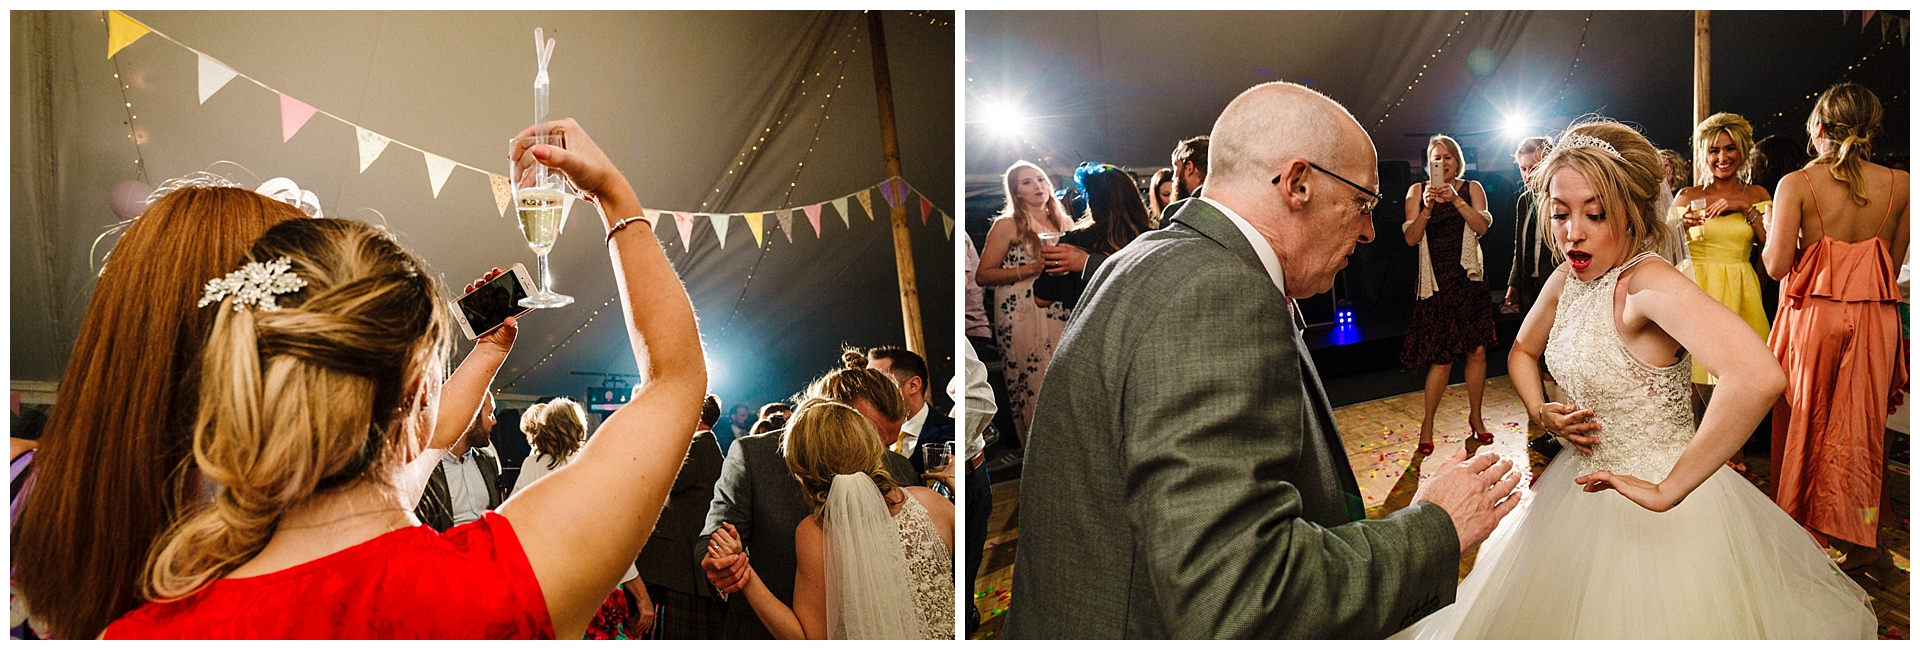 a bride dancing with her dad